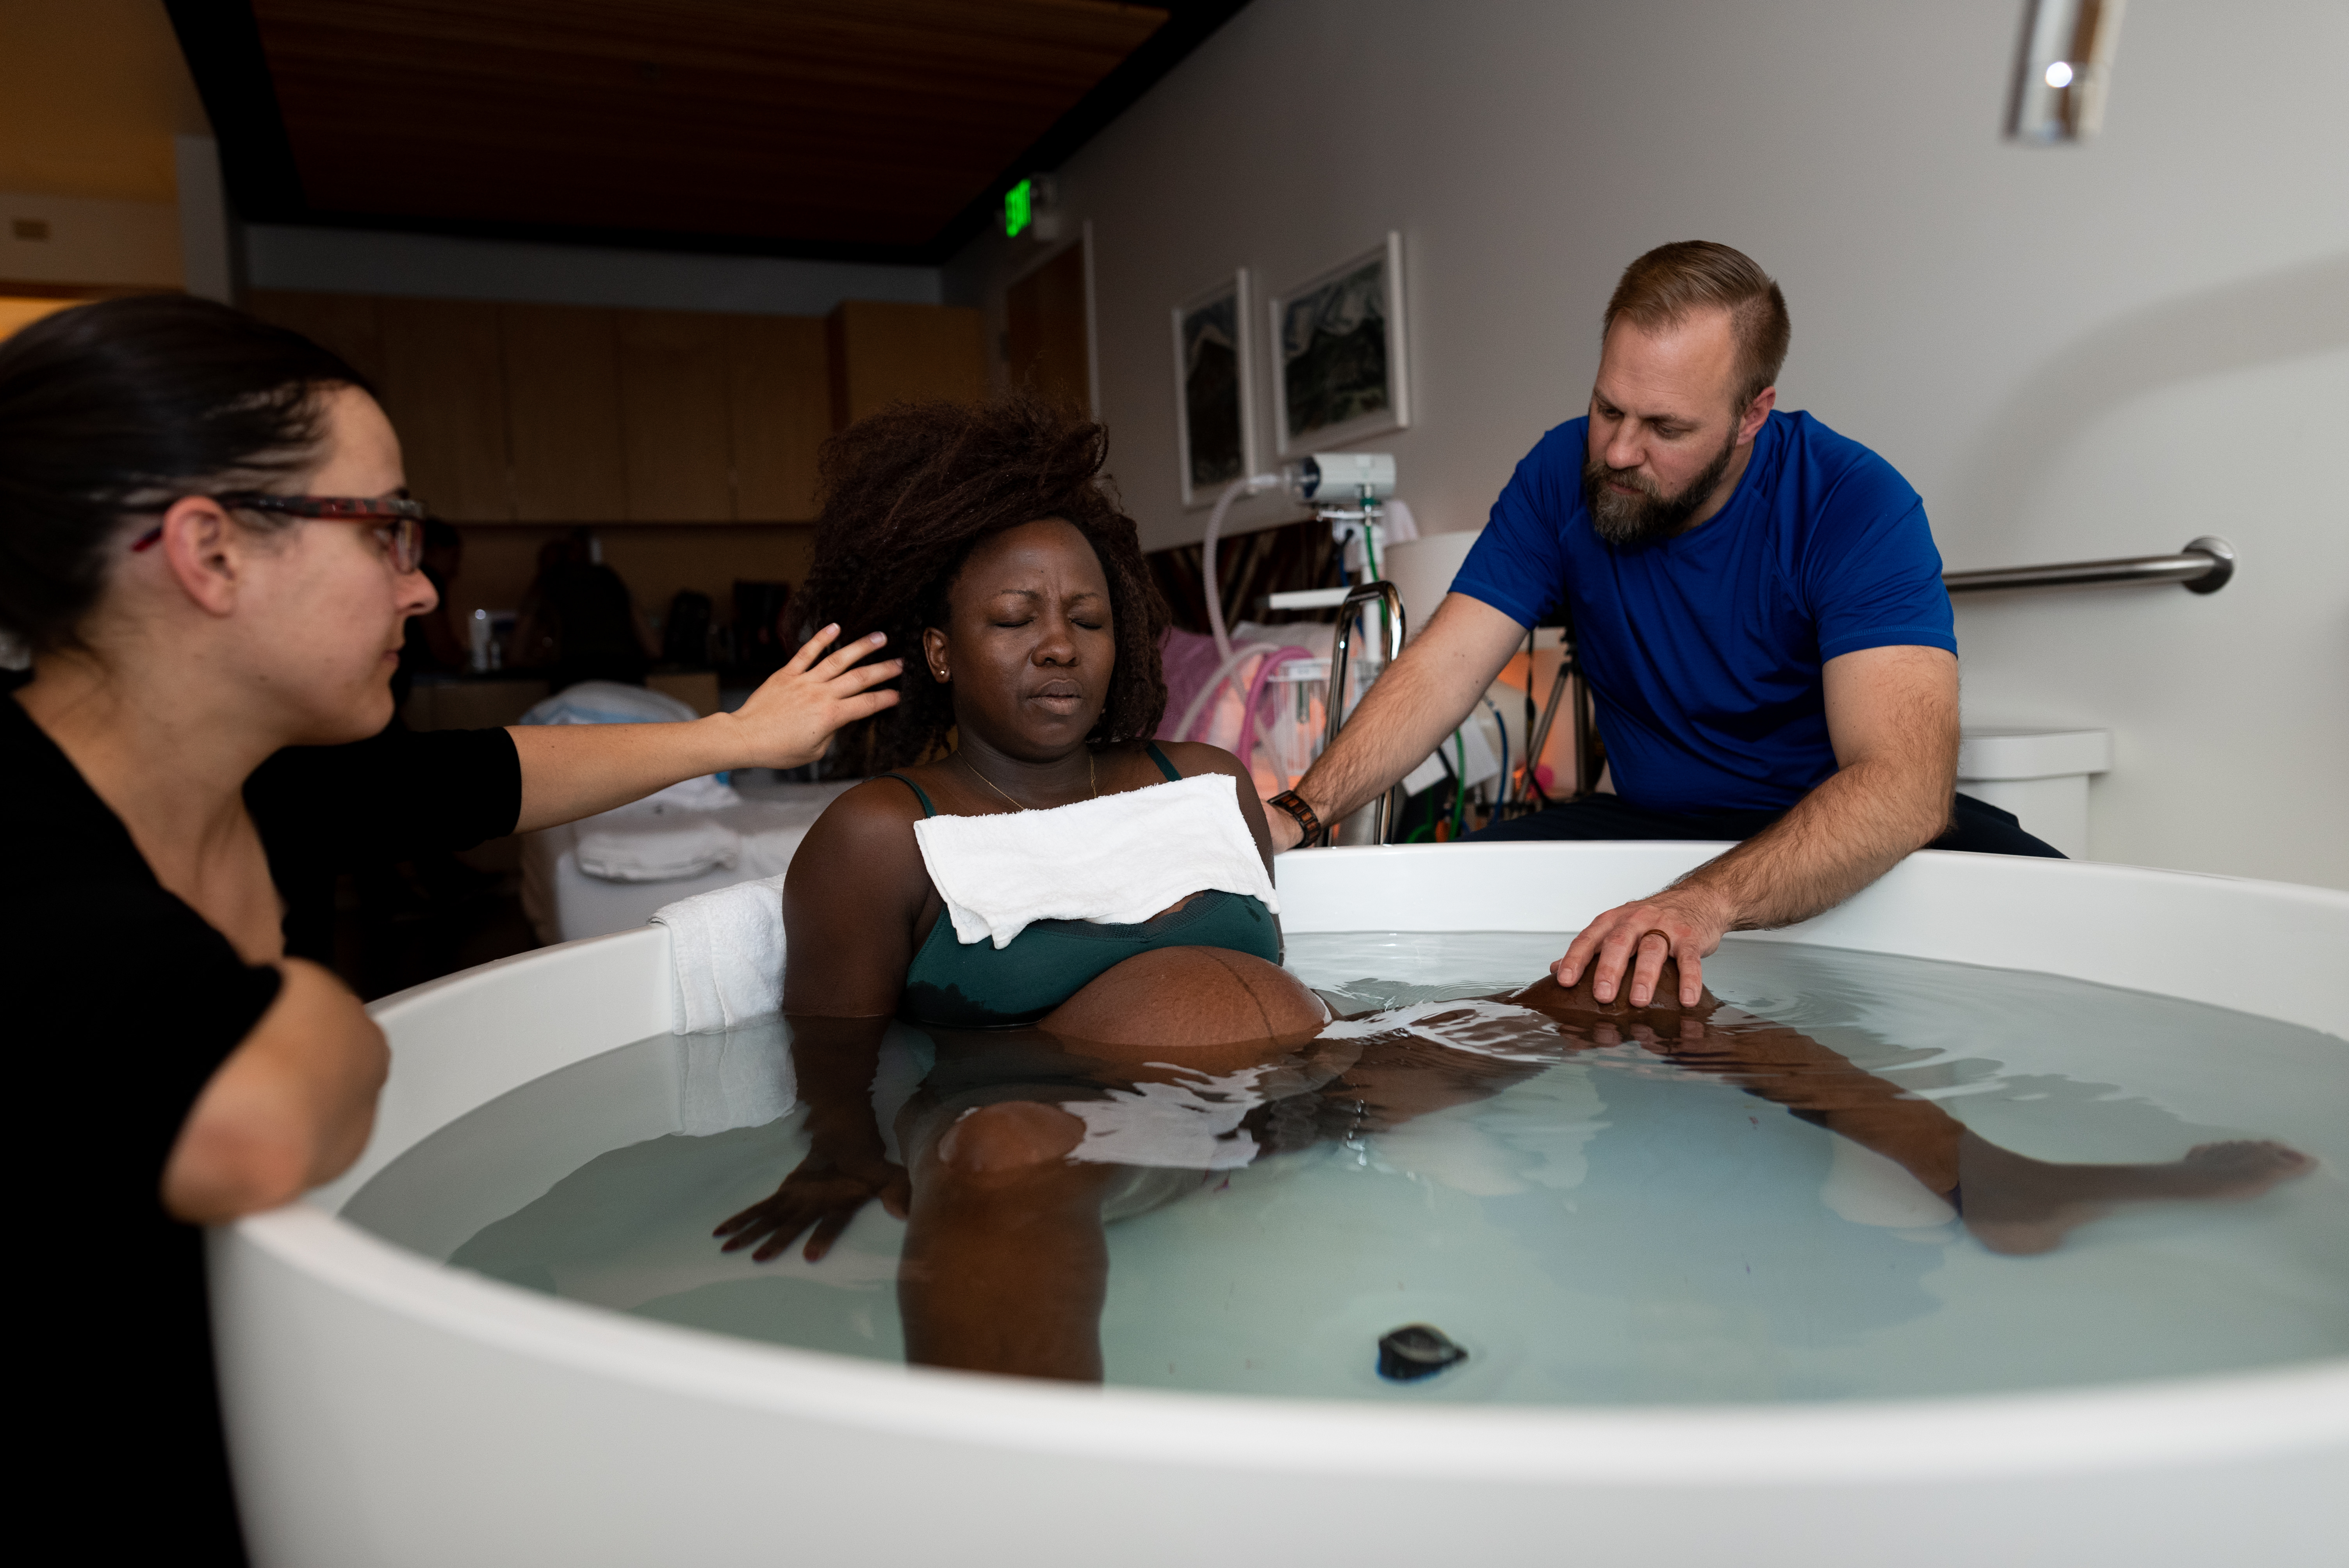 A doula and husband sit near laboring mother while she labors in a bathtub during birth story session